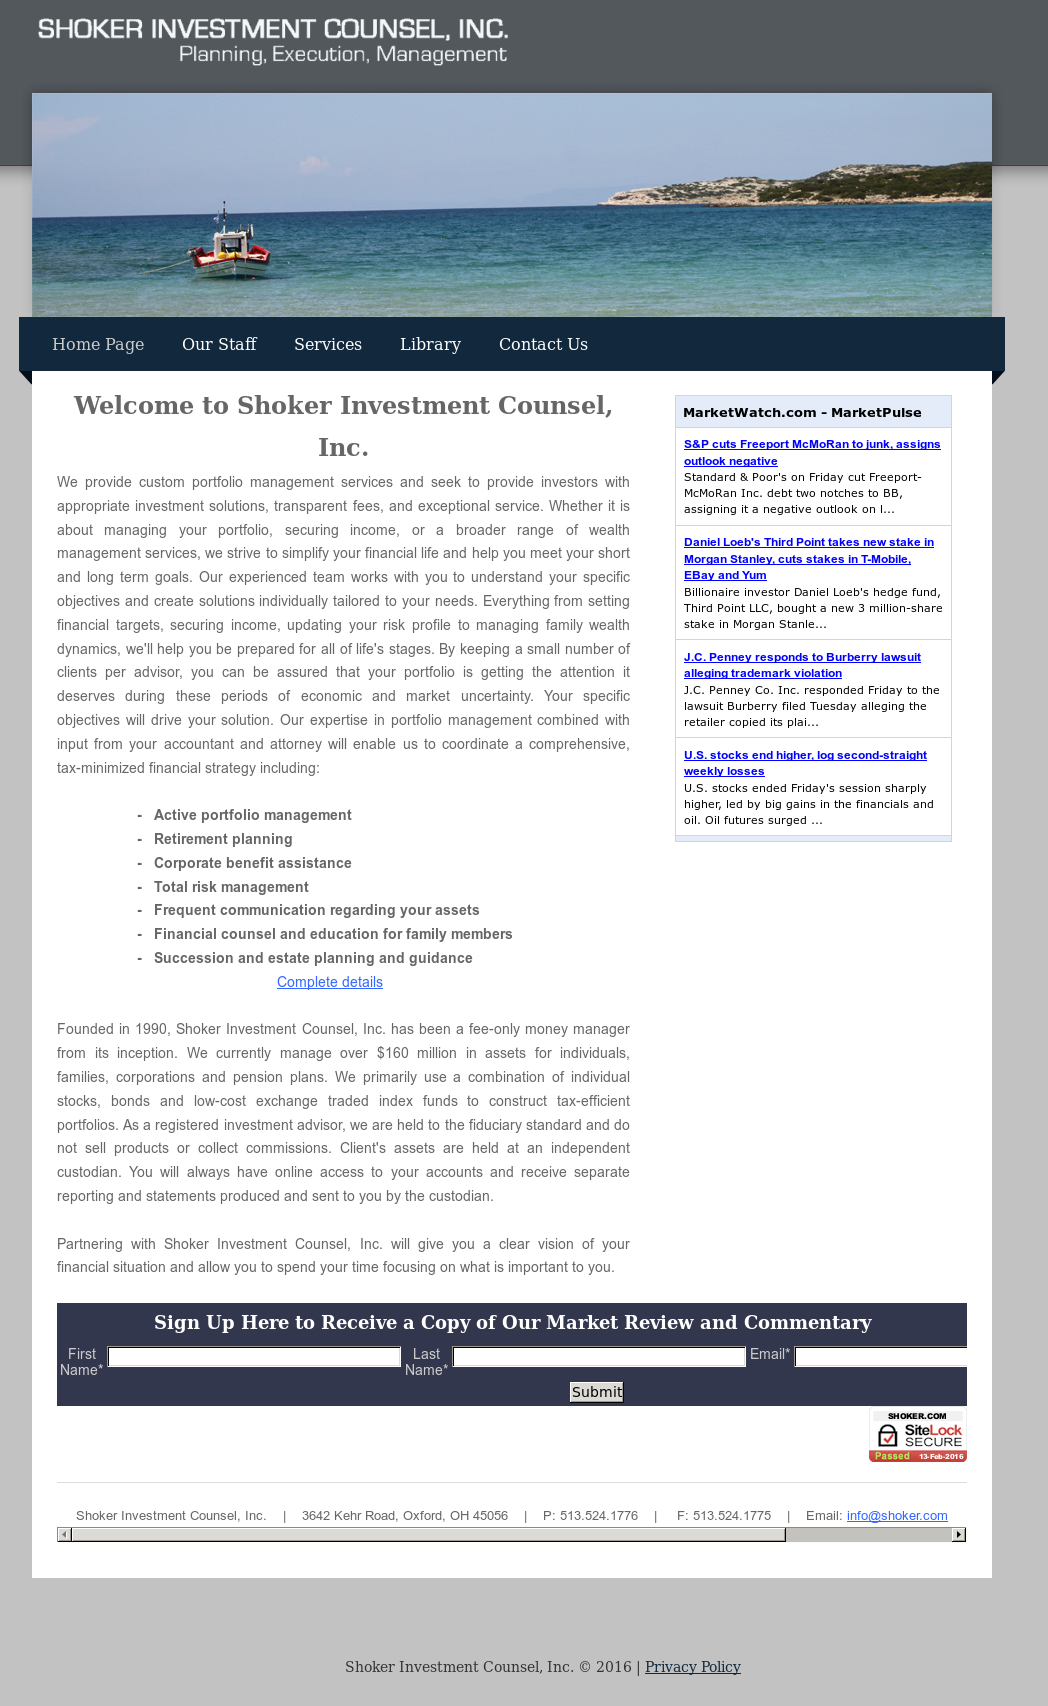 Shoker Investment Counsel Competitors, Revenue and Employees - Owler